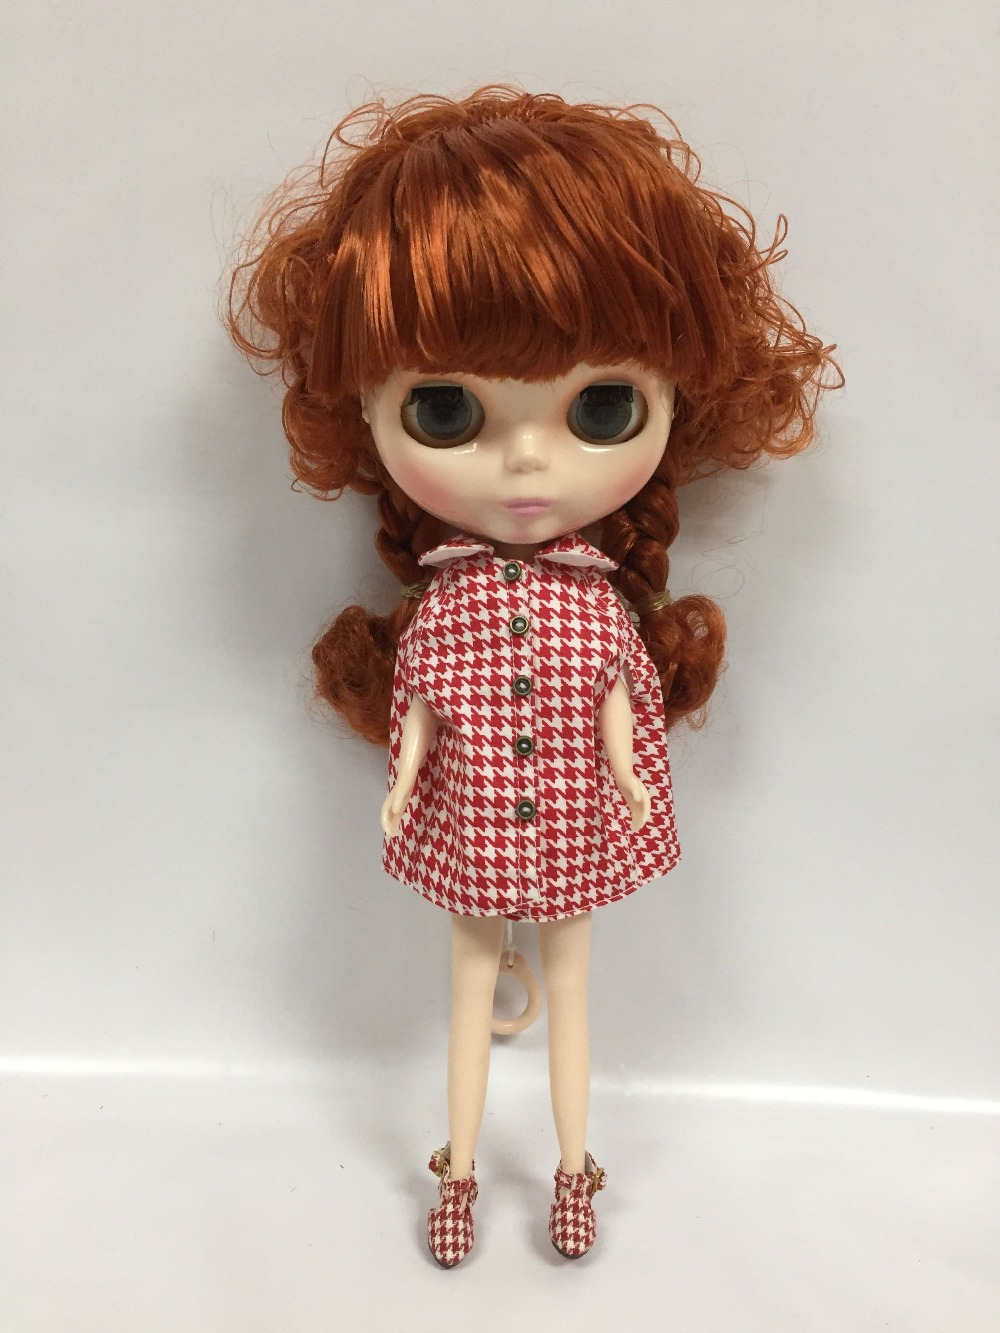 Nude Blyth Doll,Factory Doll,Suitable For Diy Change Bjd Toy For Girls Cute -In Dolls -8888